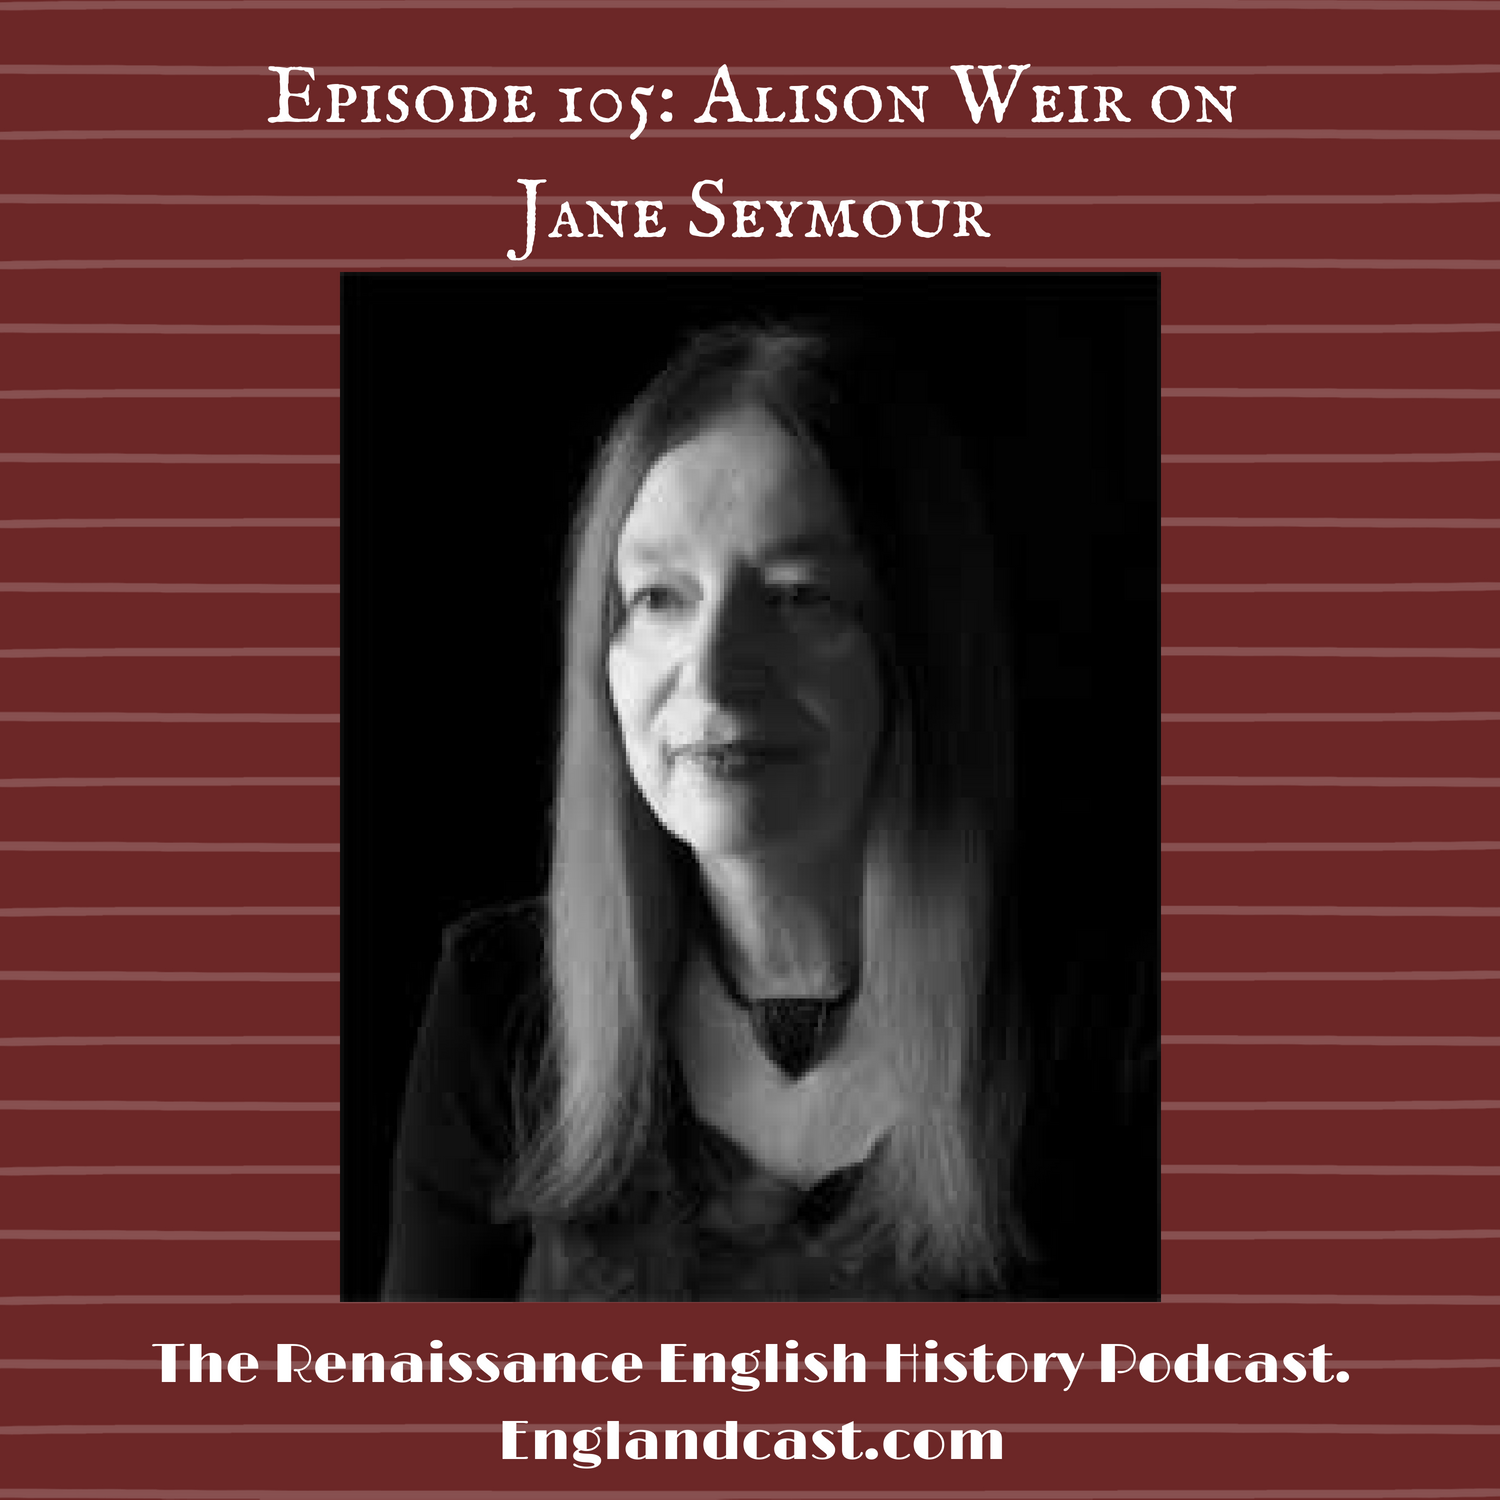 Episode 105 Historian Alison Weir on Jane Seymour